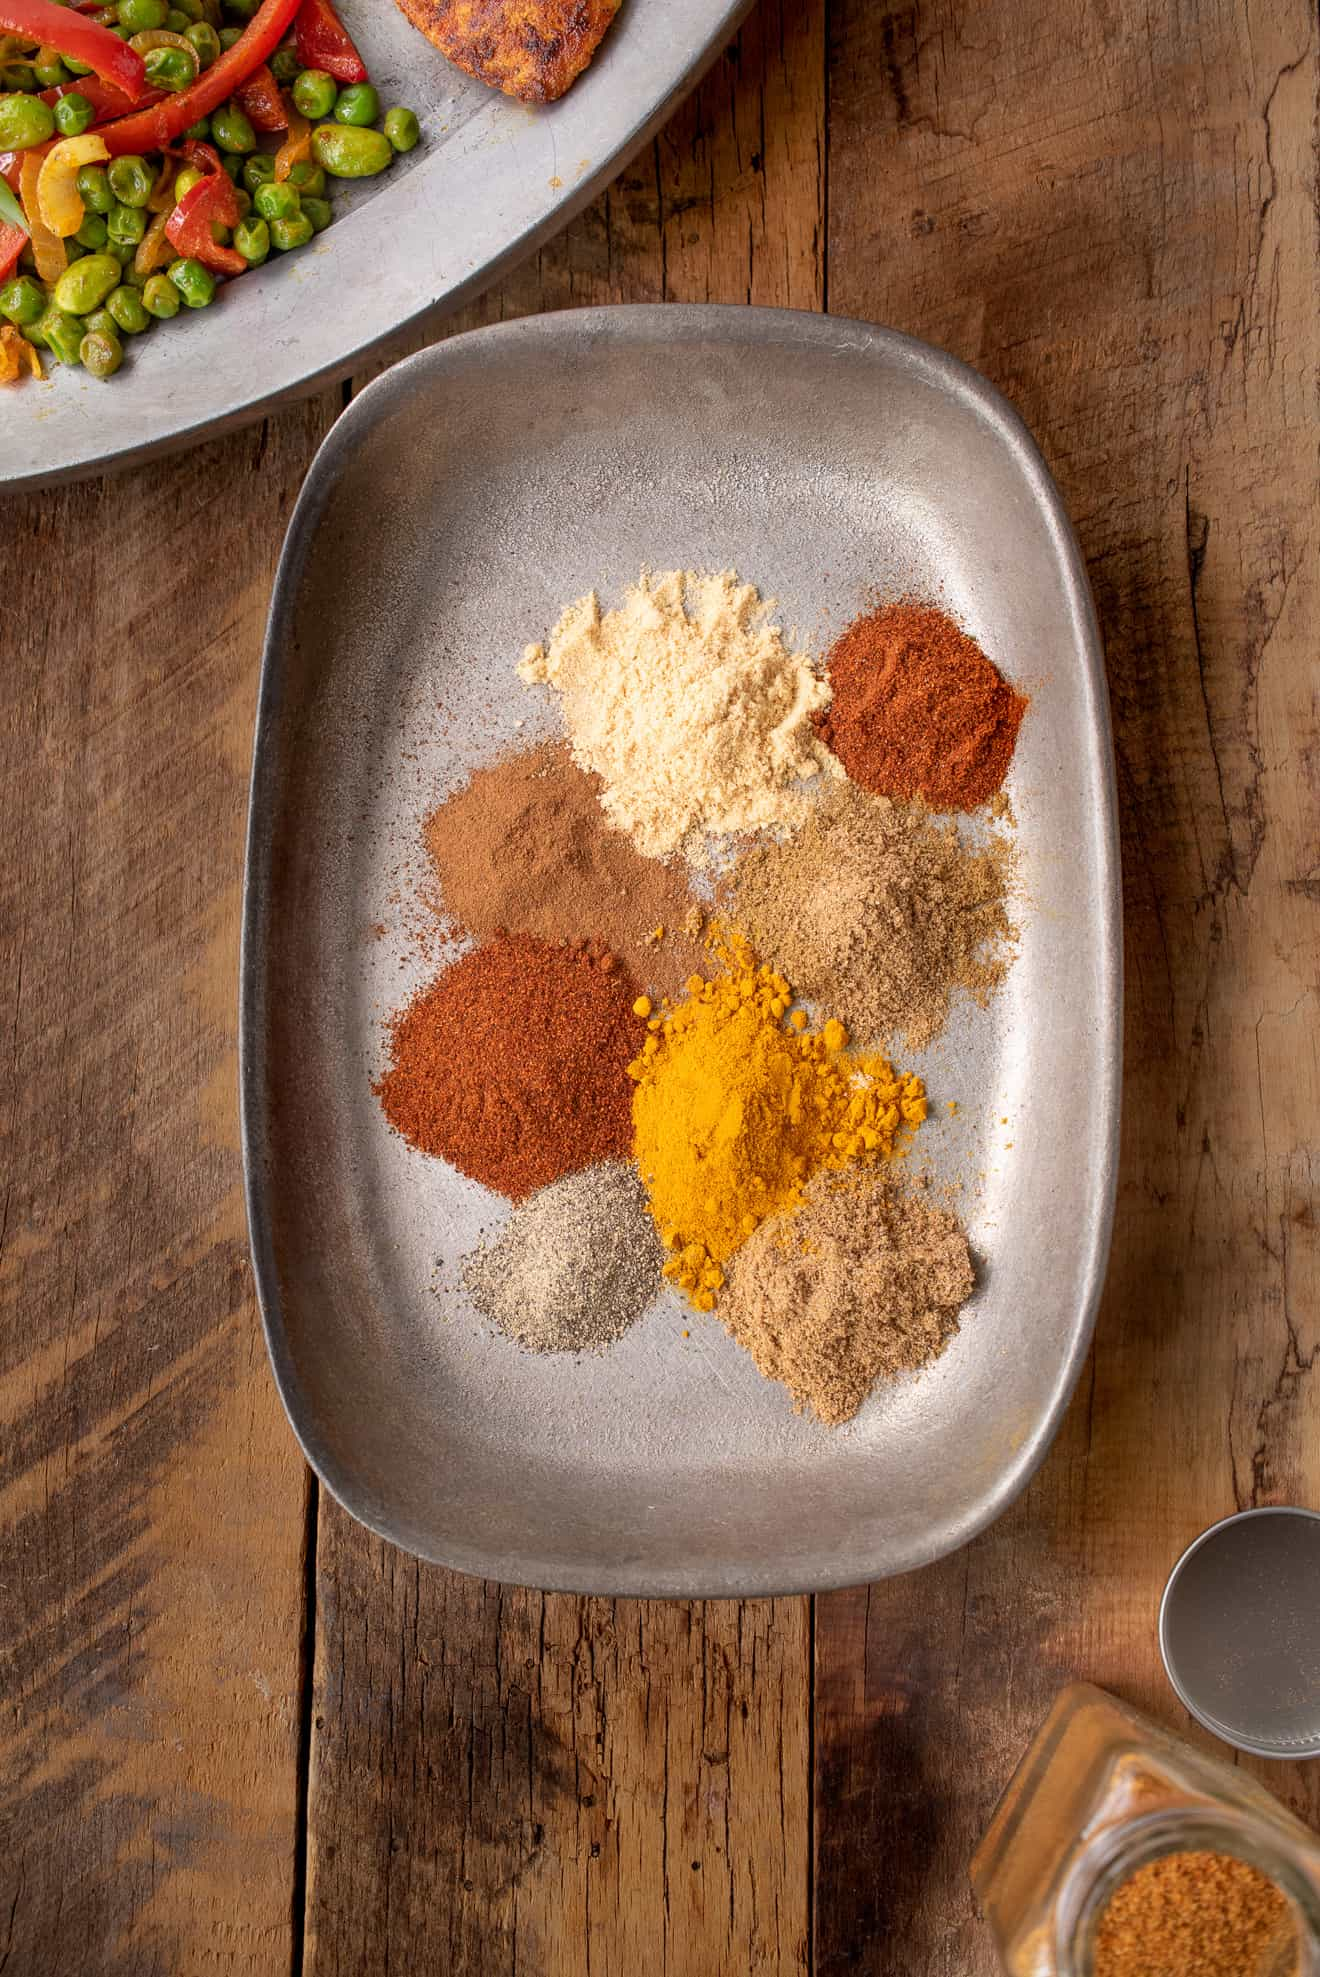 A look at different spices from overhead